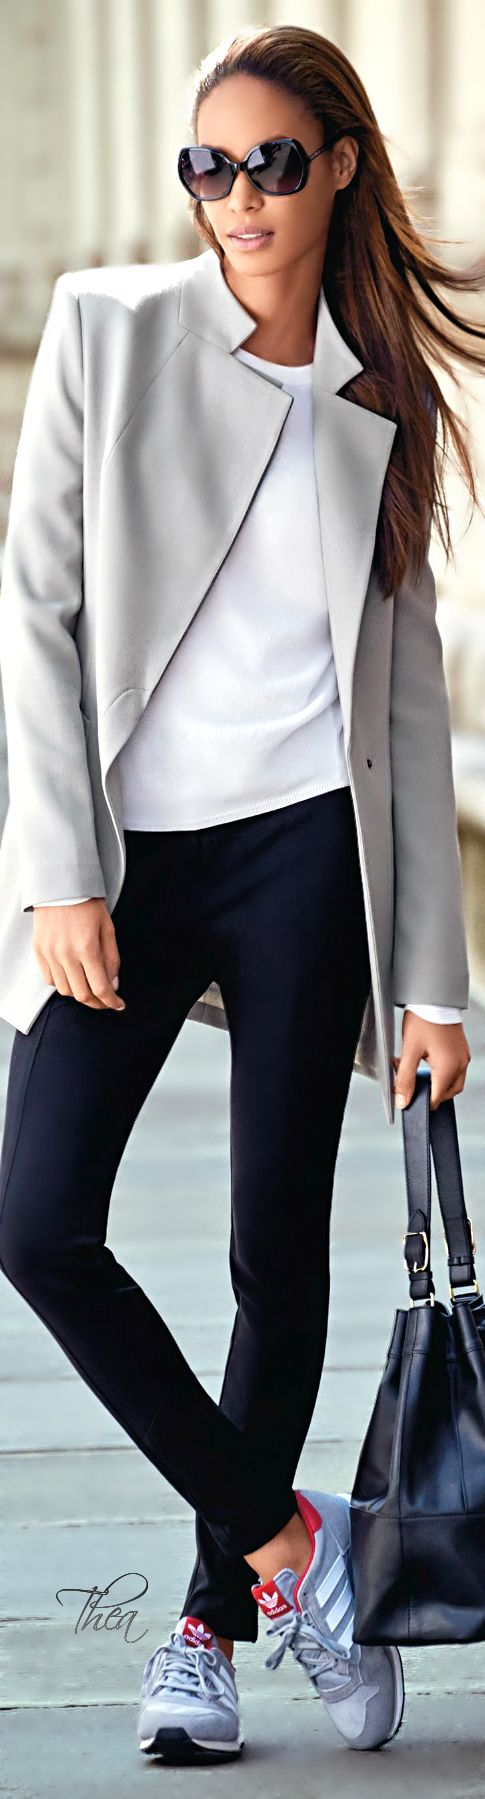 White t, black skinnies, sneakers and a really awesome gray blazer style coat